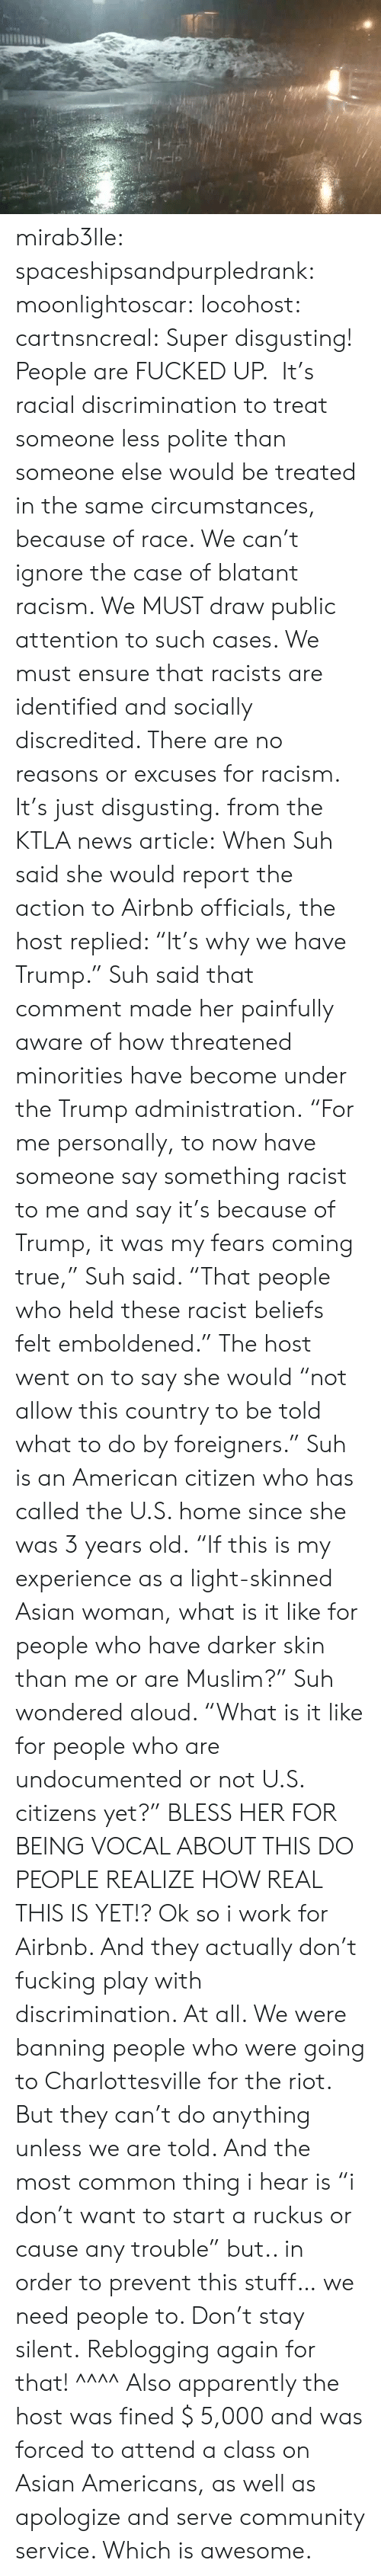 """snow storm: mirab3lle: spaceshipsandpurpledrank:   moonlightoscar:  locohost:  cartnsncreal:    Super disgusting! People are FUCKED UP. It's racial discrimination to treat someone less polite than someone else would be treated in the same circumstances, because of race. We can't ignore the case of blatant racism. We MUST draw public attention to such cases. We must ensure that racists are identified and socially discredited. There are no reasons or excuses for racism. It's just disgusting.  from the KTLA news article:  When Suh said she would report the action to Airbnb officials, the host replied: """"It's why we have Trump."""" Suh said that comment made her painfully aware of how threatened minorities have become under the Trump administration. """"For me personally, to now have someone say something racist to me and say it's because of Trump, it was my fears coming true,"""" Suh said. """"That people who held these racist beliefs felt emboldened."""" The host went on to say she would """"not allow this country to be told what to do by foreigners."""" Suh is an American citizen who has called the U.S. home since she was 3 years old. """"If this is my experience as a light-skinned Asian woman, what is it like for people who have darker skin than me or are Muslim?"""" Suh wondered aloud. """"What is it like for people who are undocumented or not U.S. citizens yet?""""    BLESS HER FOR BEING VOCAL ABOUT THIS DO PEOPLE REALIZE HOW REAL THIS IS YET!?   Ok so i work for Airbnb.  And they actually don't fucking play with discrimination. At all. We were banning people who were going to Charlottesville for the riot.  But they can't do anything unless we are told. And the most common thing i hear is """"i don't want to start a ruckus or cause any trouble"""" but.. in order to prevent this stuff… we need people to. Don't stay silent.   Reblogging again for that! ^^^^ Also apparently the host was fined $ 5,000 and was forced to attend a class on Asian Americans, as well as apologize and serve community service. Whic"""